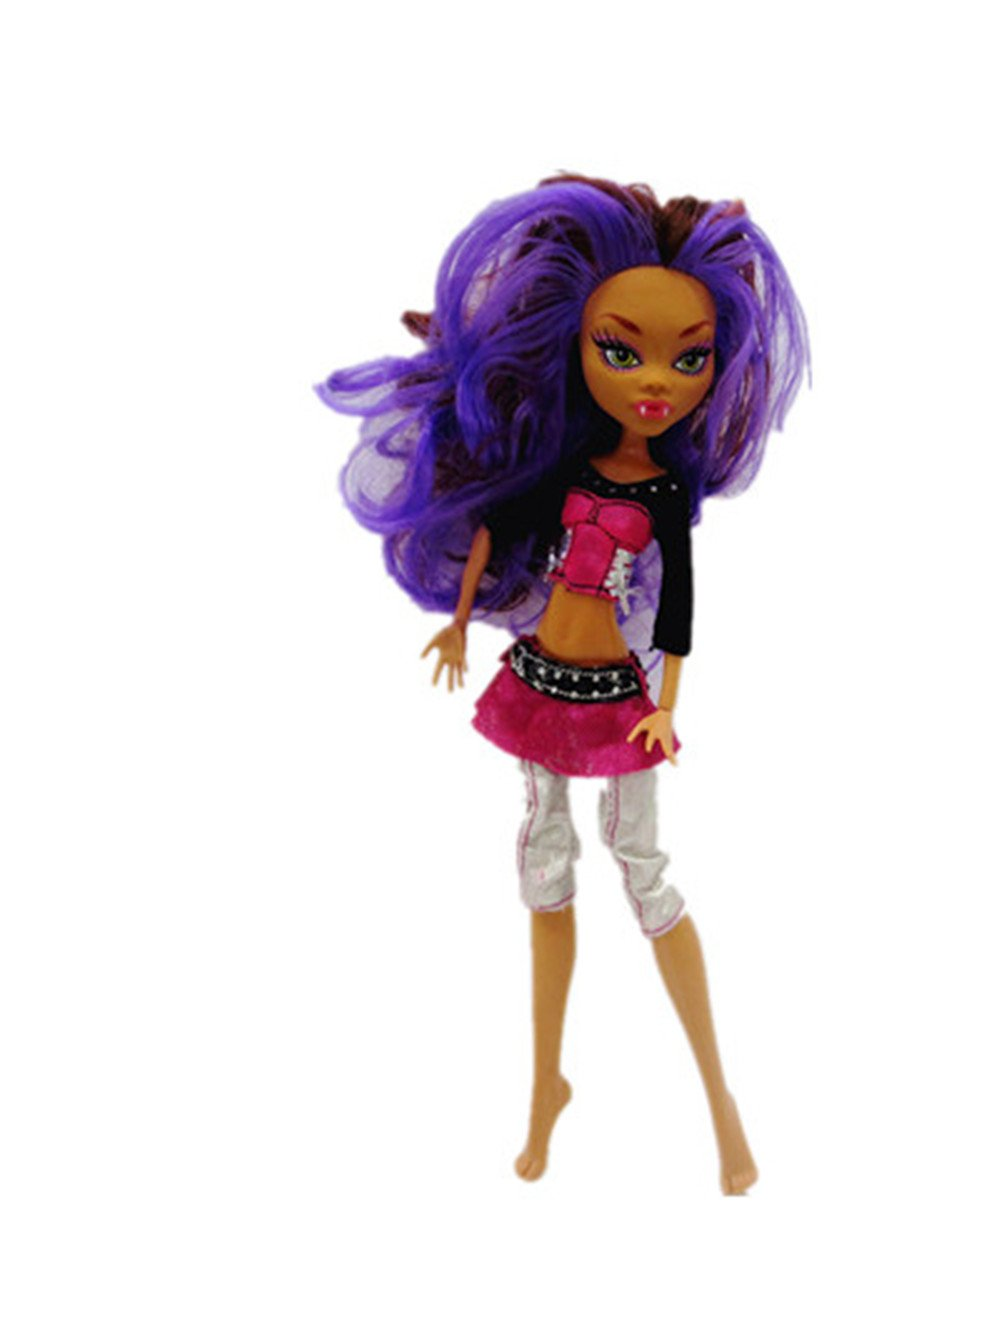 Red Bare Midriff Tops Peplum White Pants Outfits Fiction Dress Purple For Monster High Dolls Toys Games